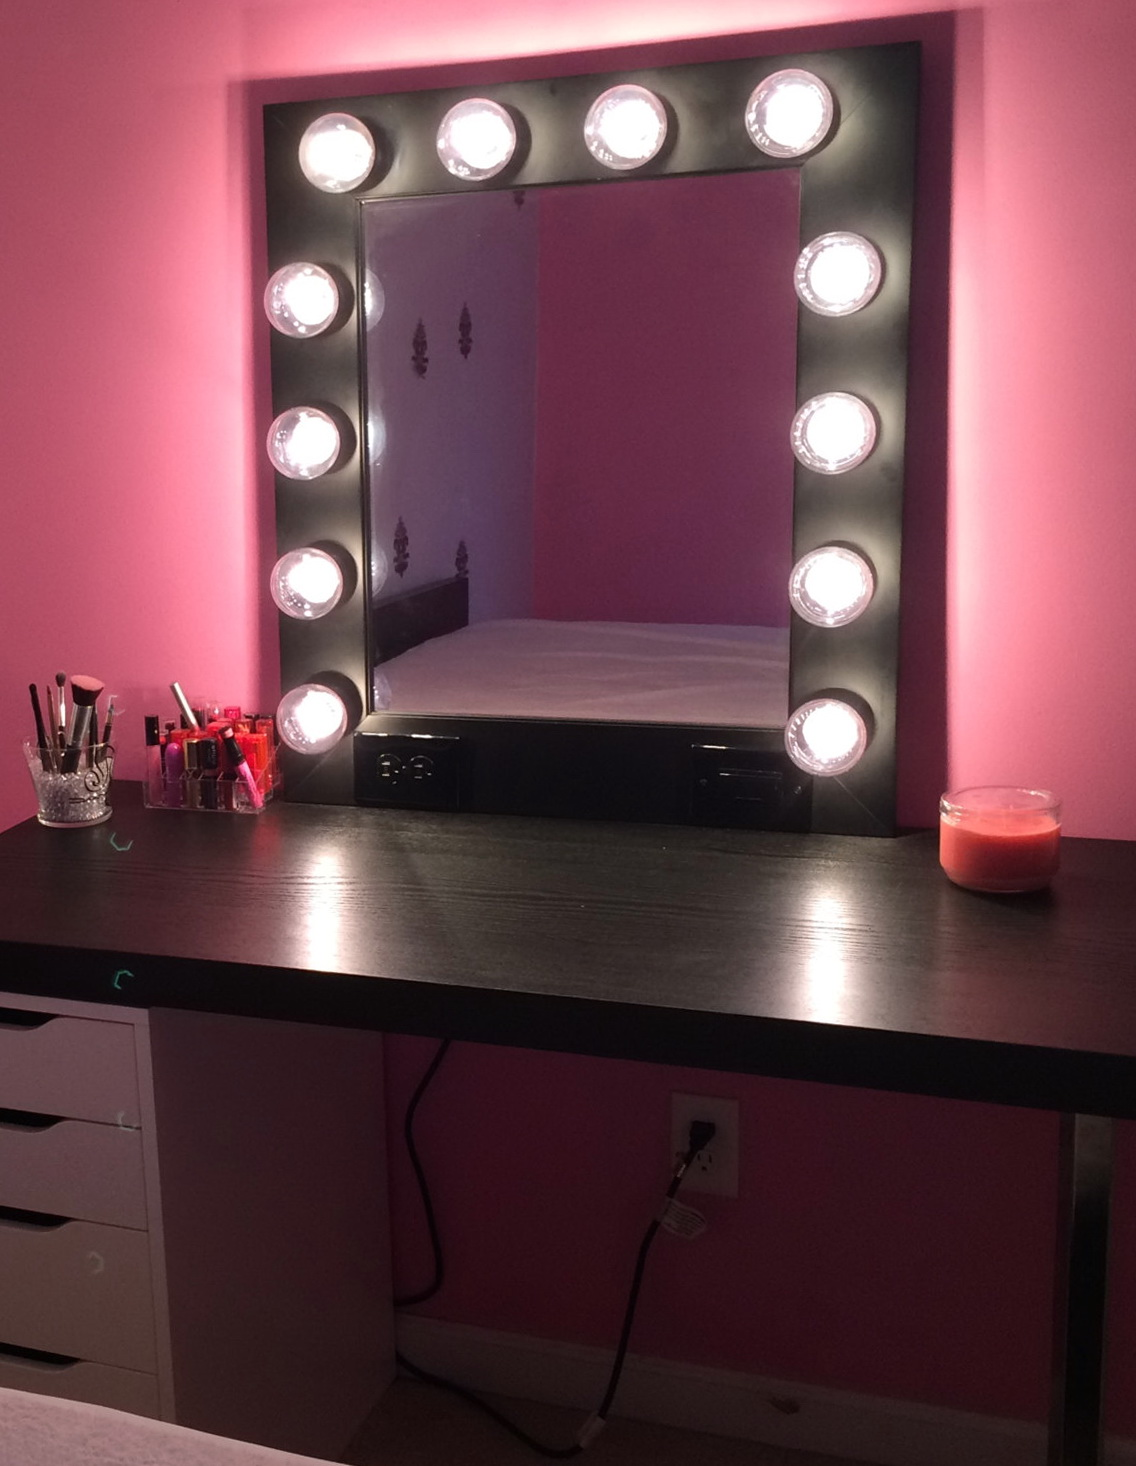 Vanity Dresser With Mirror And Lights - Vanity Dresser With Mirror And Lights Home Design Ideas